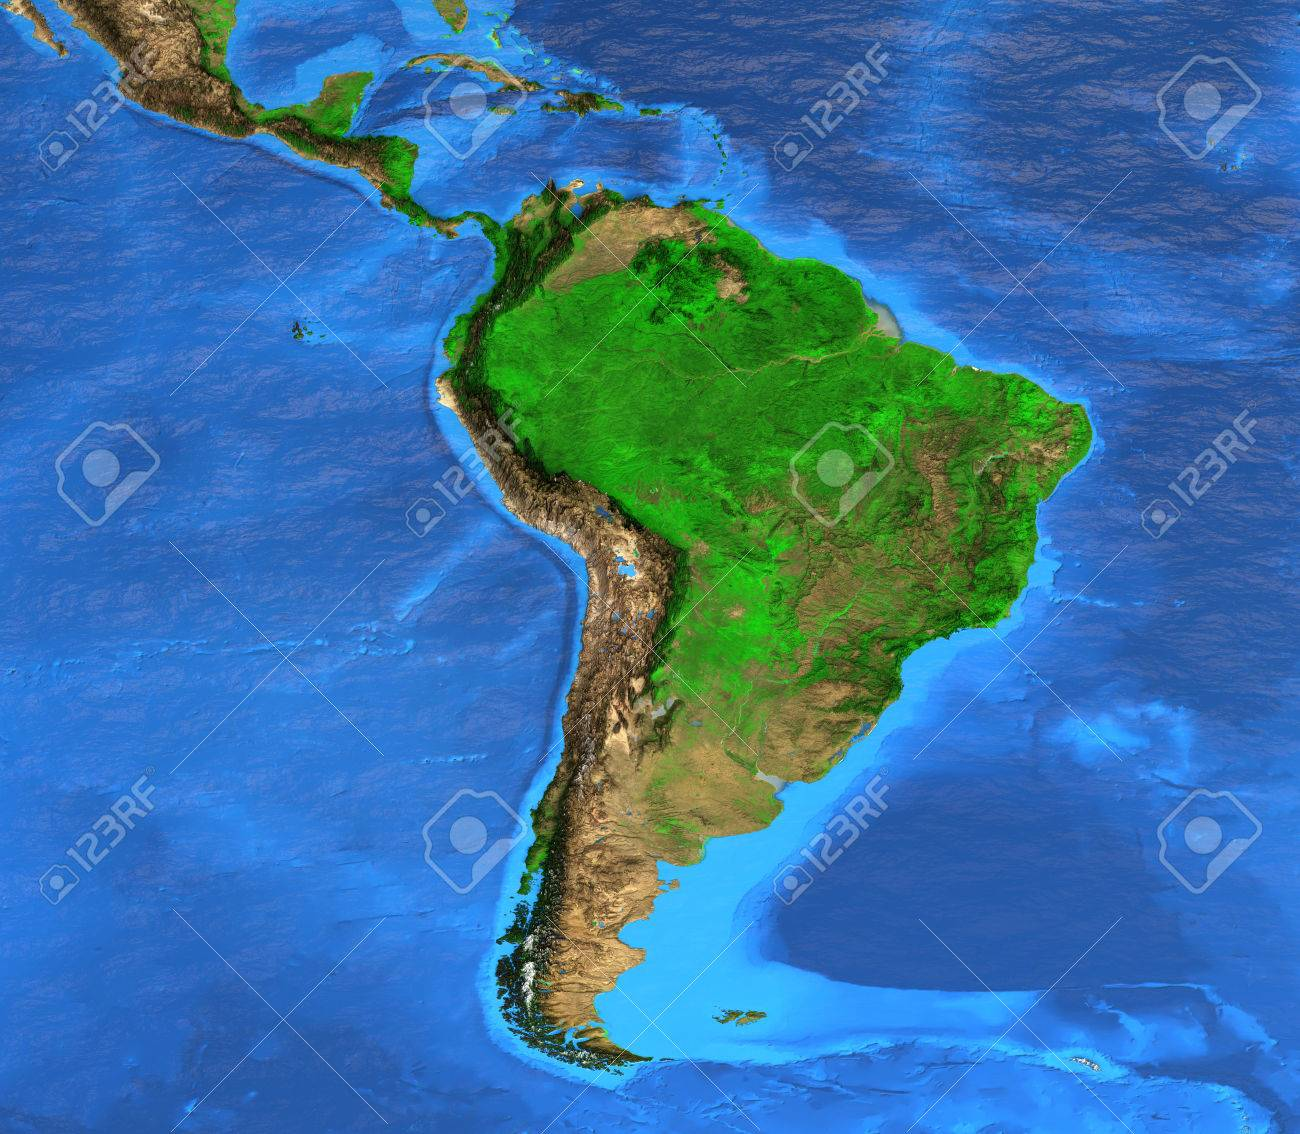 detailed satellite view of the earth and its landforms south america map elements of